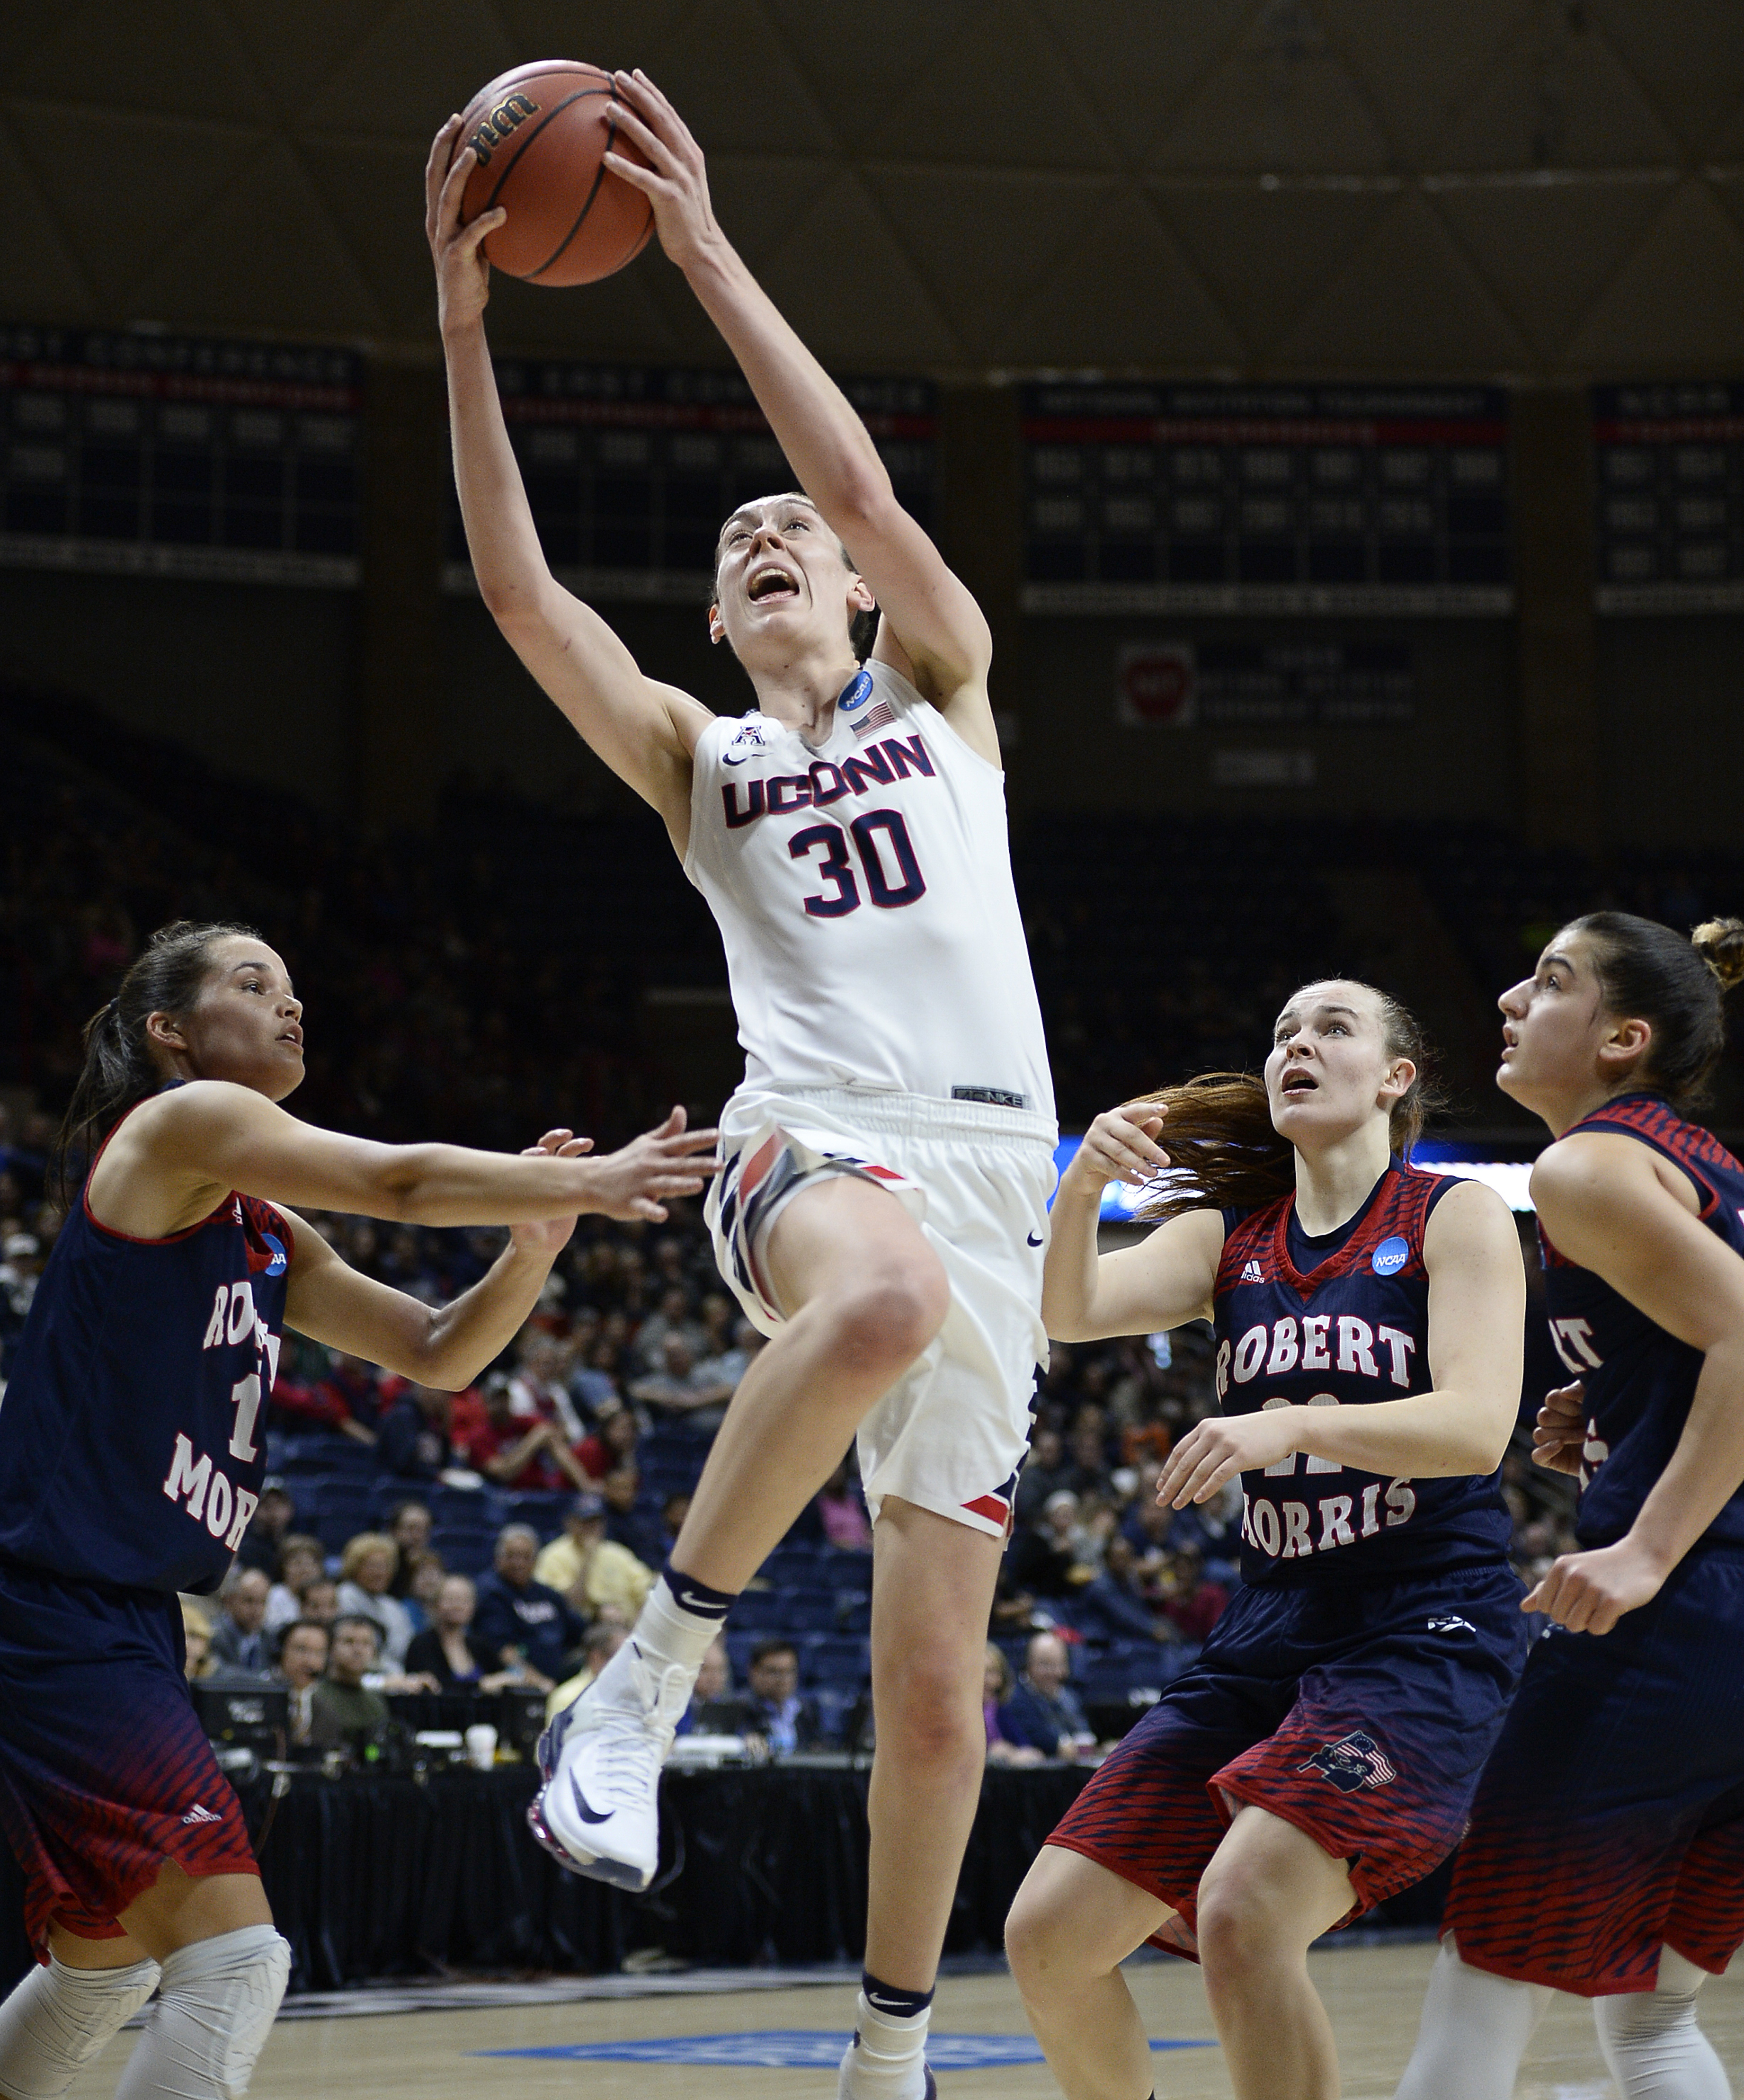 Connecticuts Breanna Stewart shoots over the defense of Robert Morris Lou Mataly, left, Megan Smith, right center, and A Niki Stamolamprou, right, during a first round women's college basketball game in the NCAA Tournament, Saturday, March 19, 2016, in St